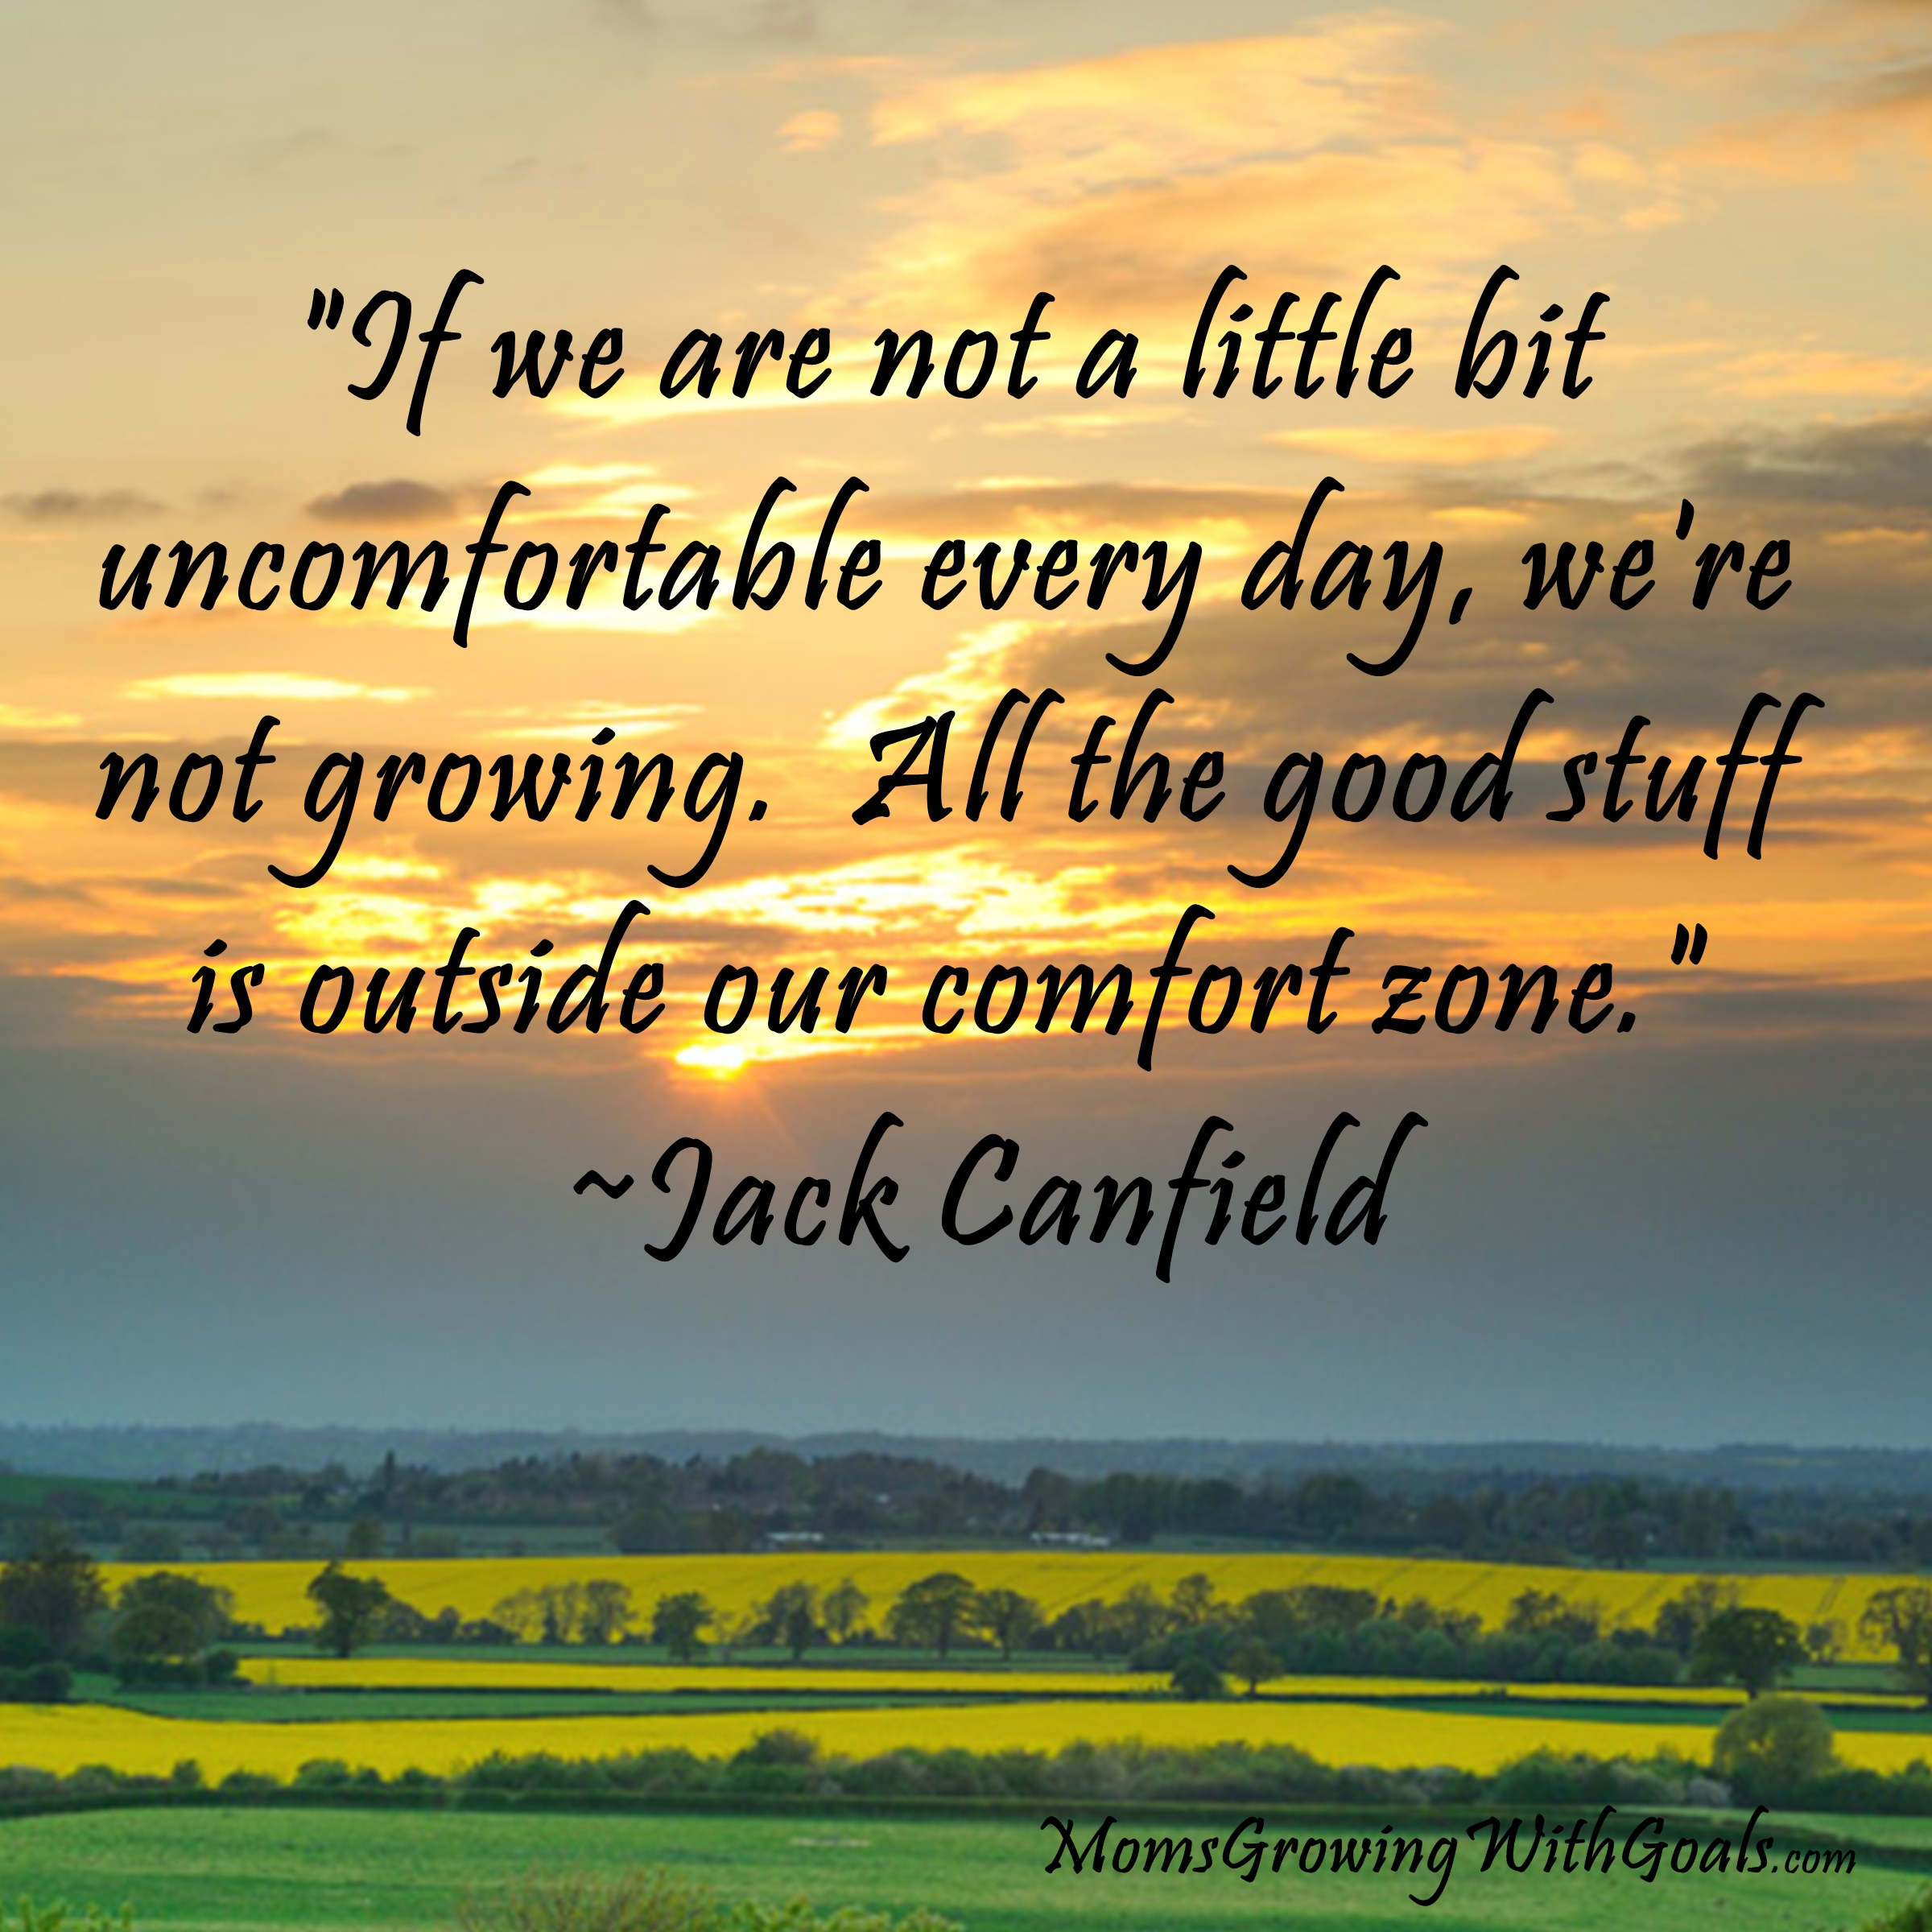 Inspirarional Quotes: Inspirational Quotes Of Comfort. QuotesGram